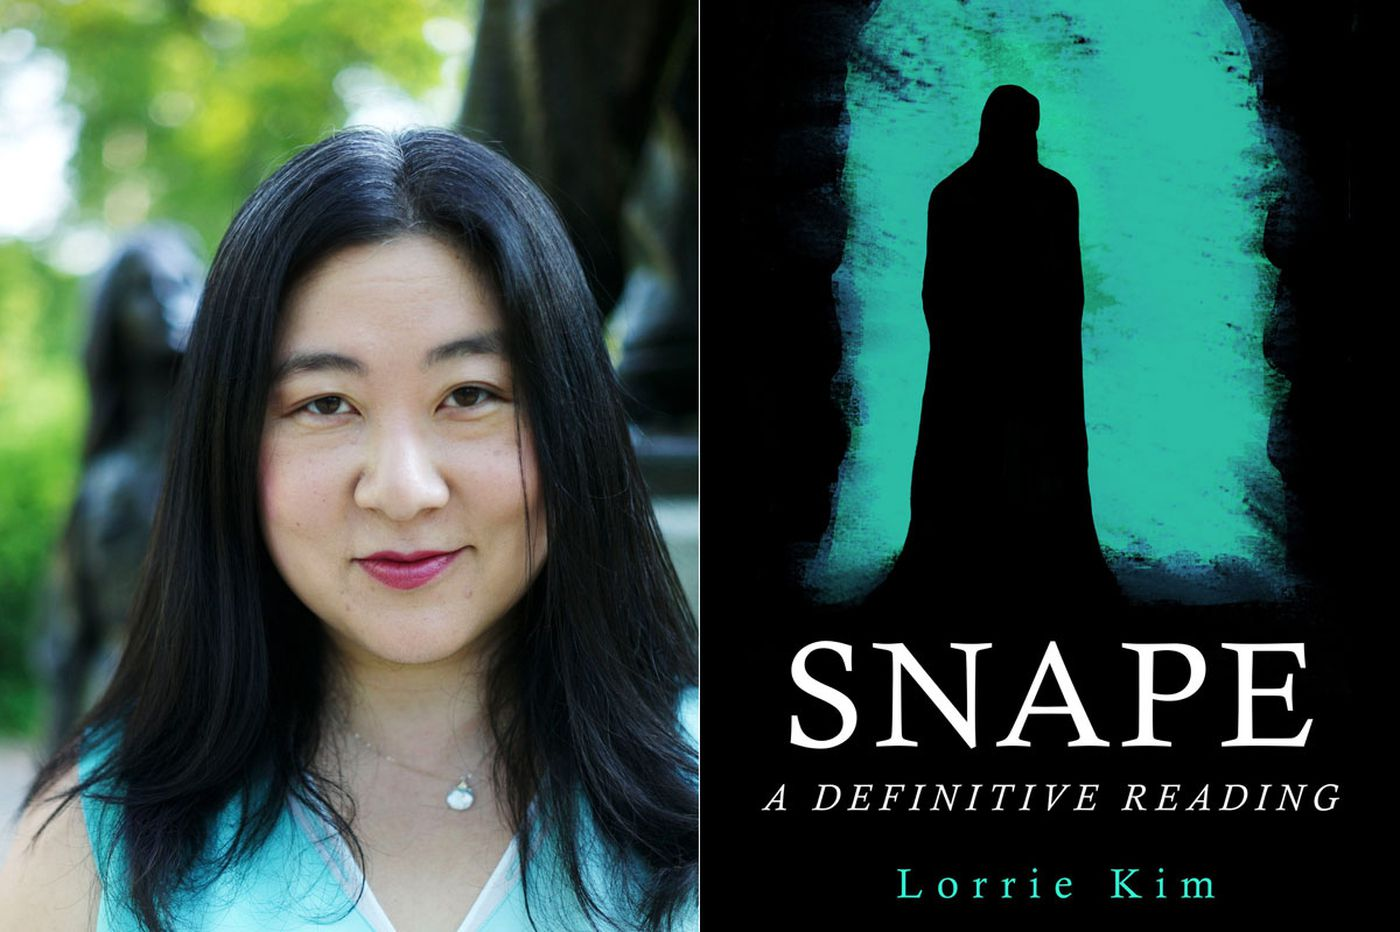 Philly author: If Trump is Voldemort, voters must invoke Snape